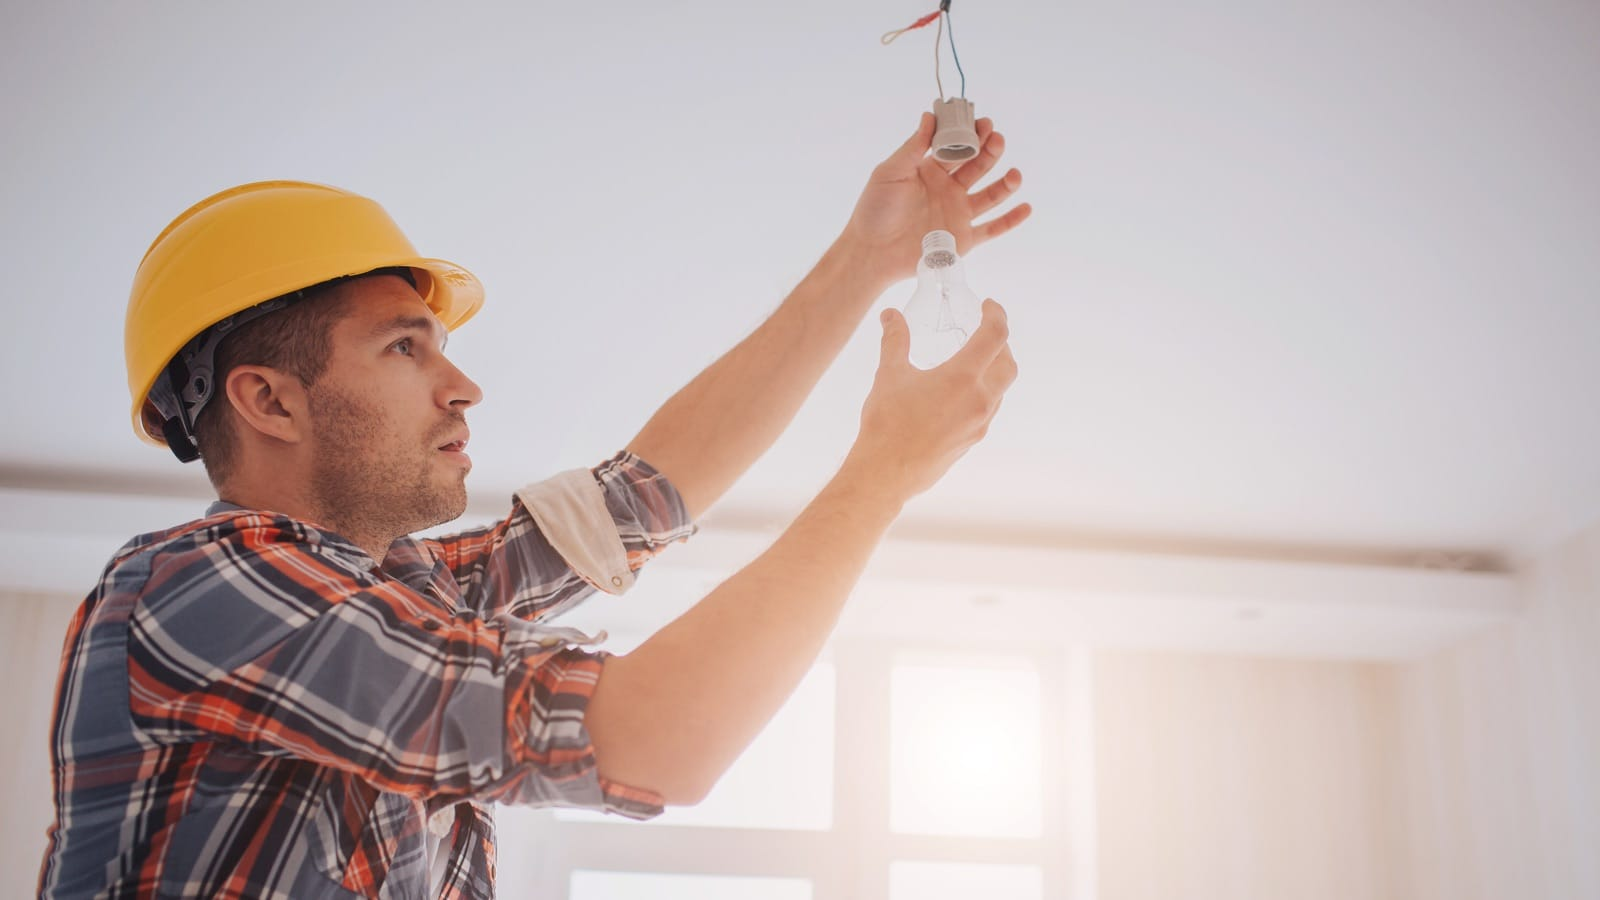 Commercial liability insurance, along with property and worker's compensation insurance, is a crucial tool for most businesses